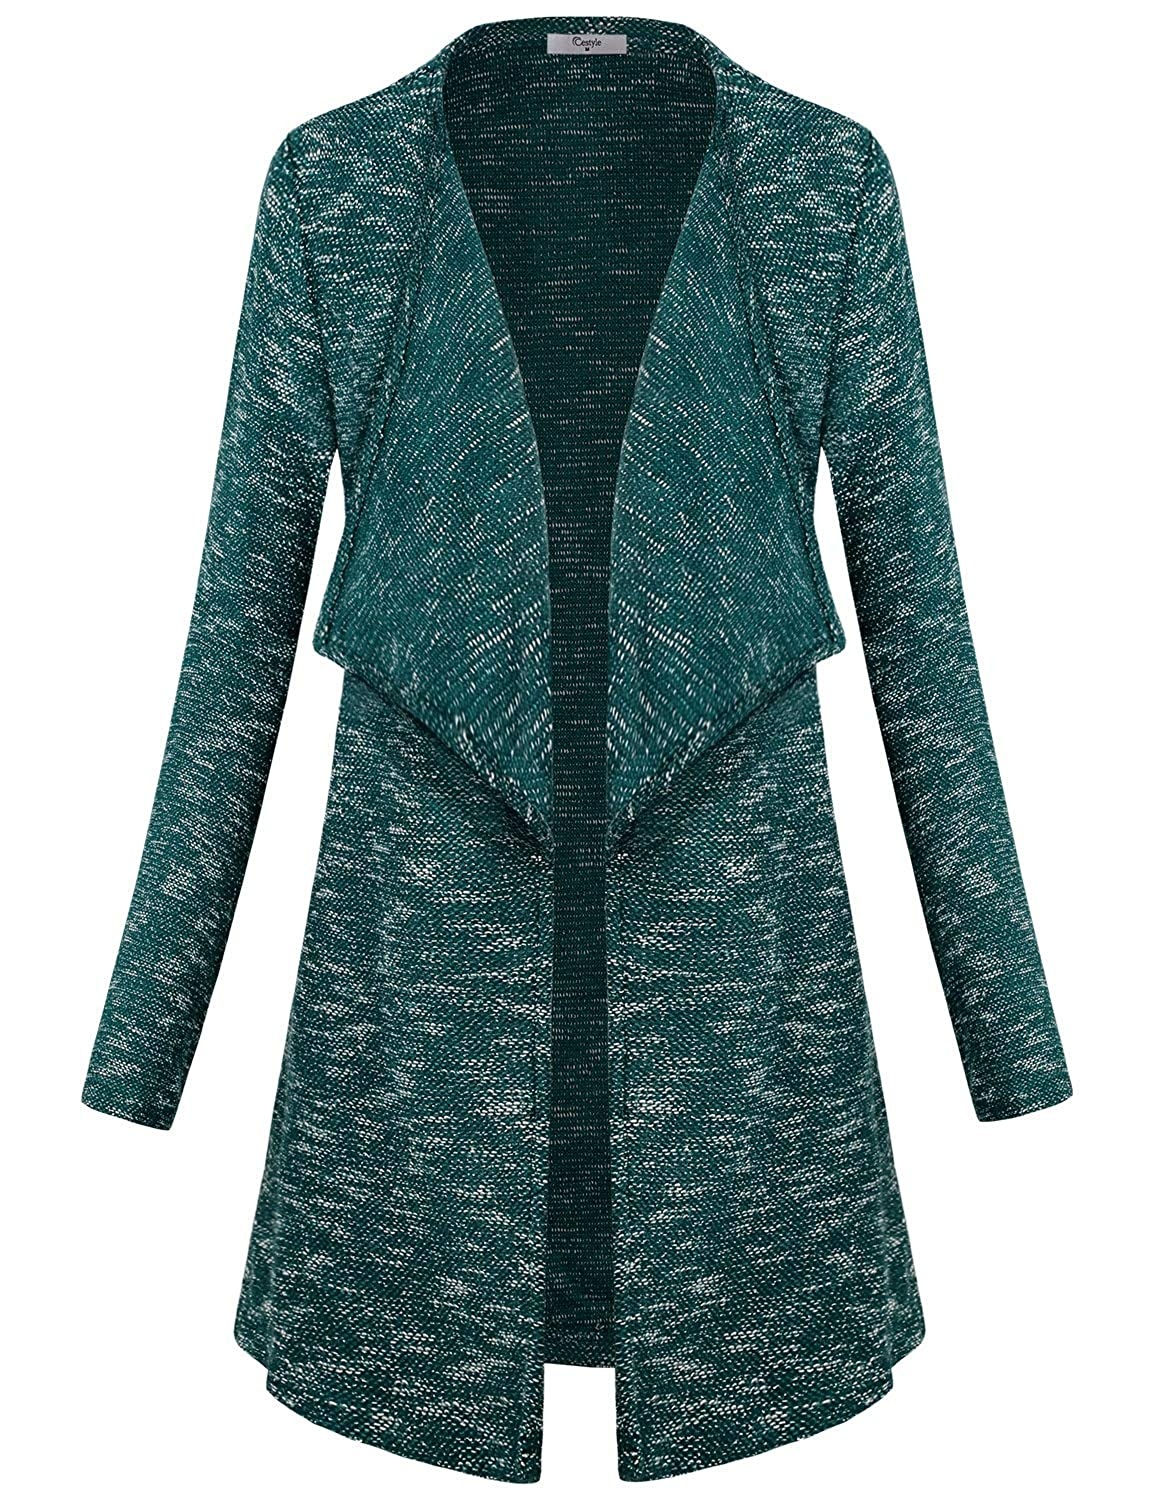 Long Sleeve   Lapel Neck   Side Pockets   Heather Colored   Open Front With  No Closure Cozy cardigan for women c04e80030